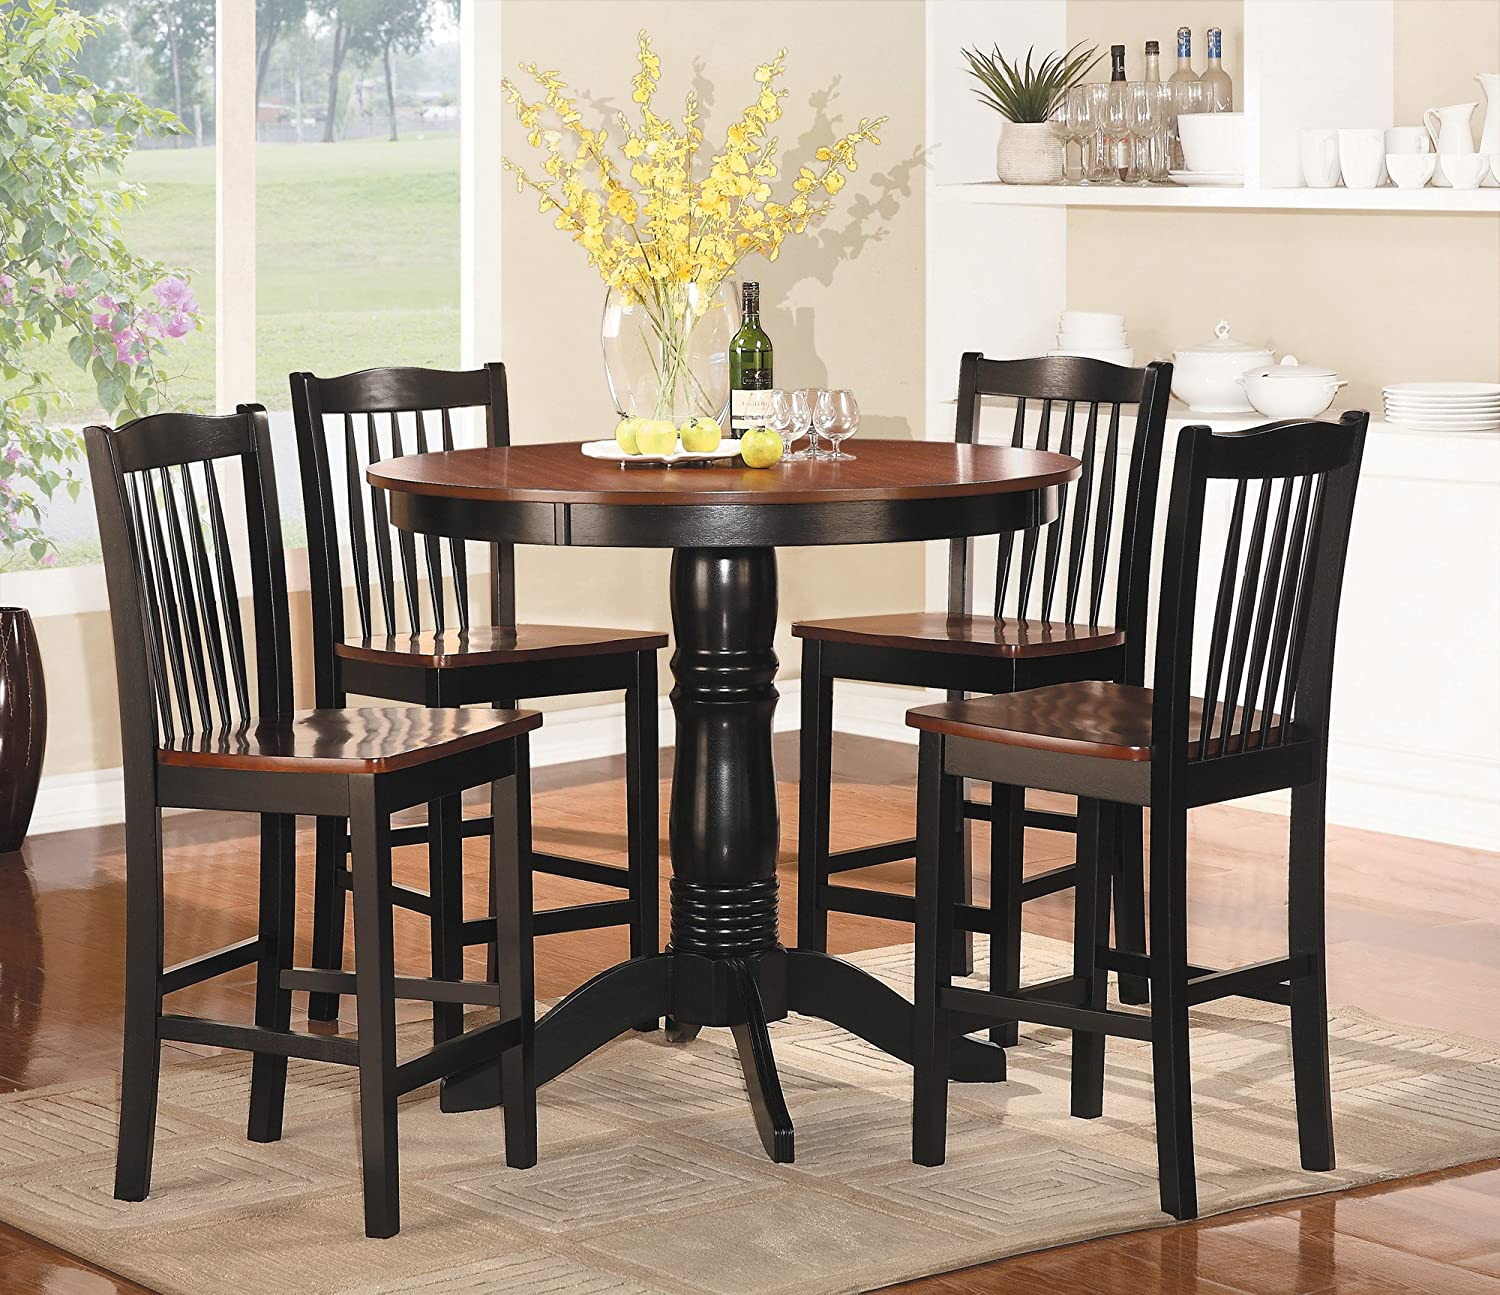 Amazon.com: Homelegance 2458-36 5-Piece Round Counter Height Dining ...